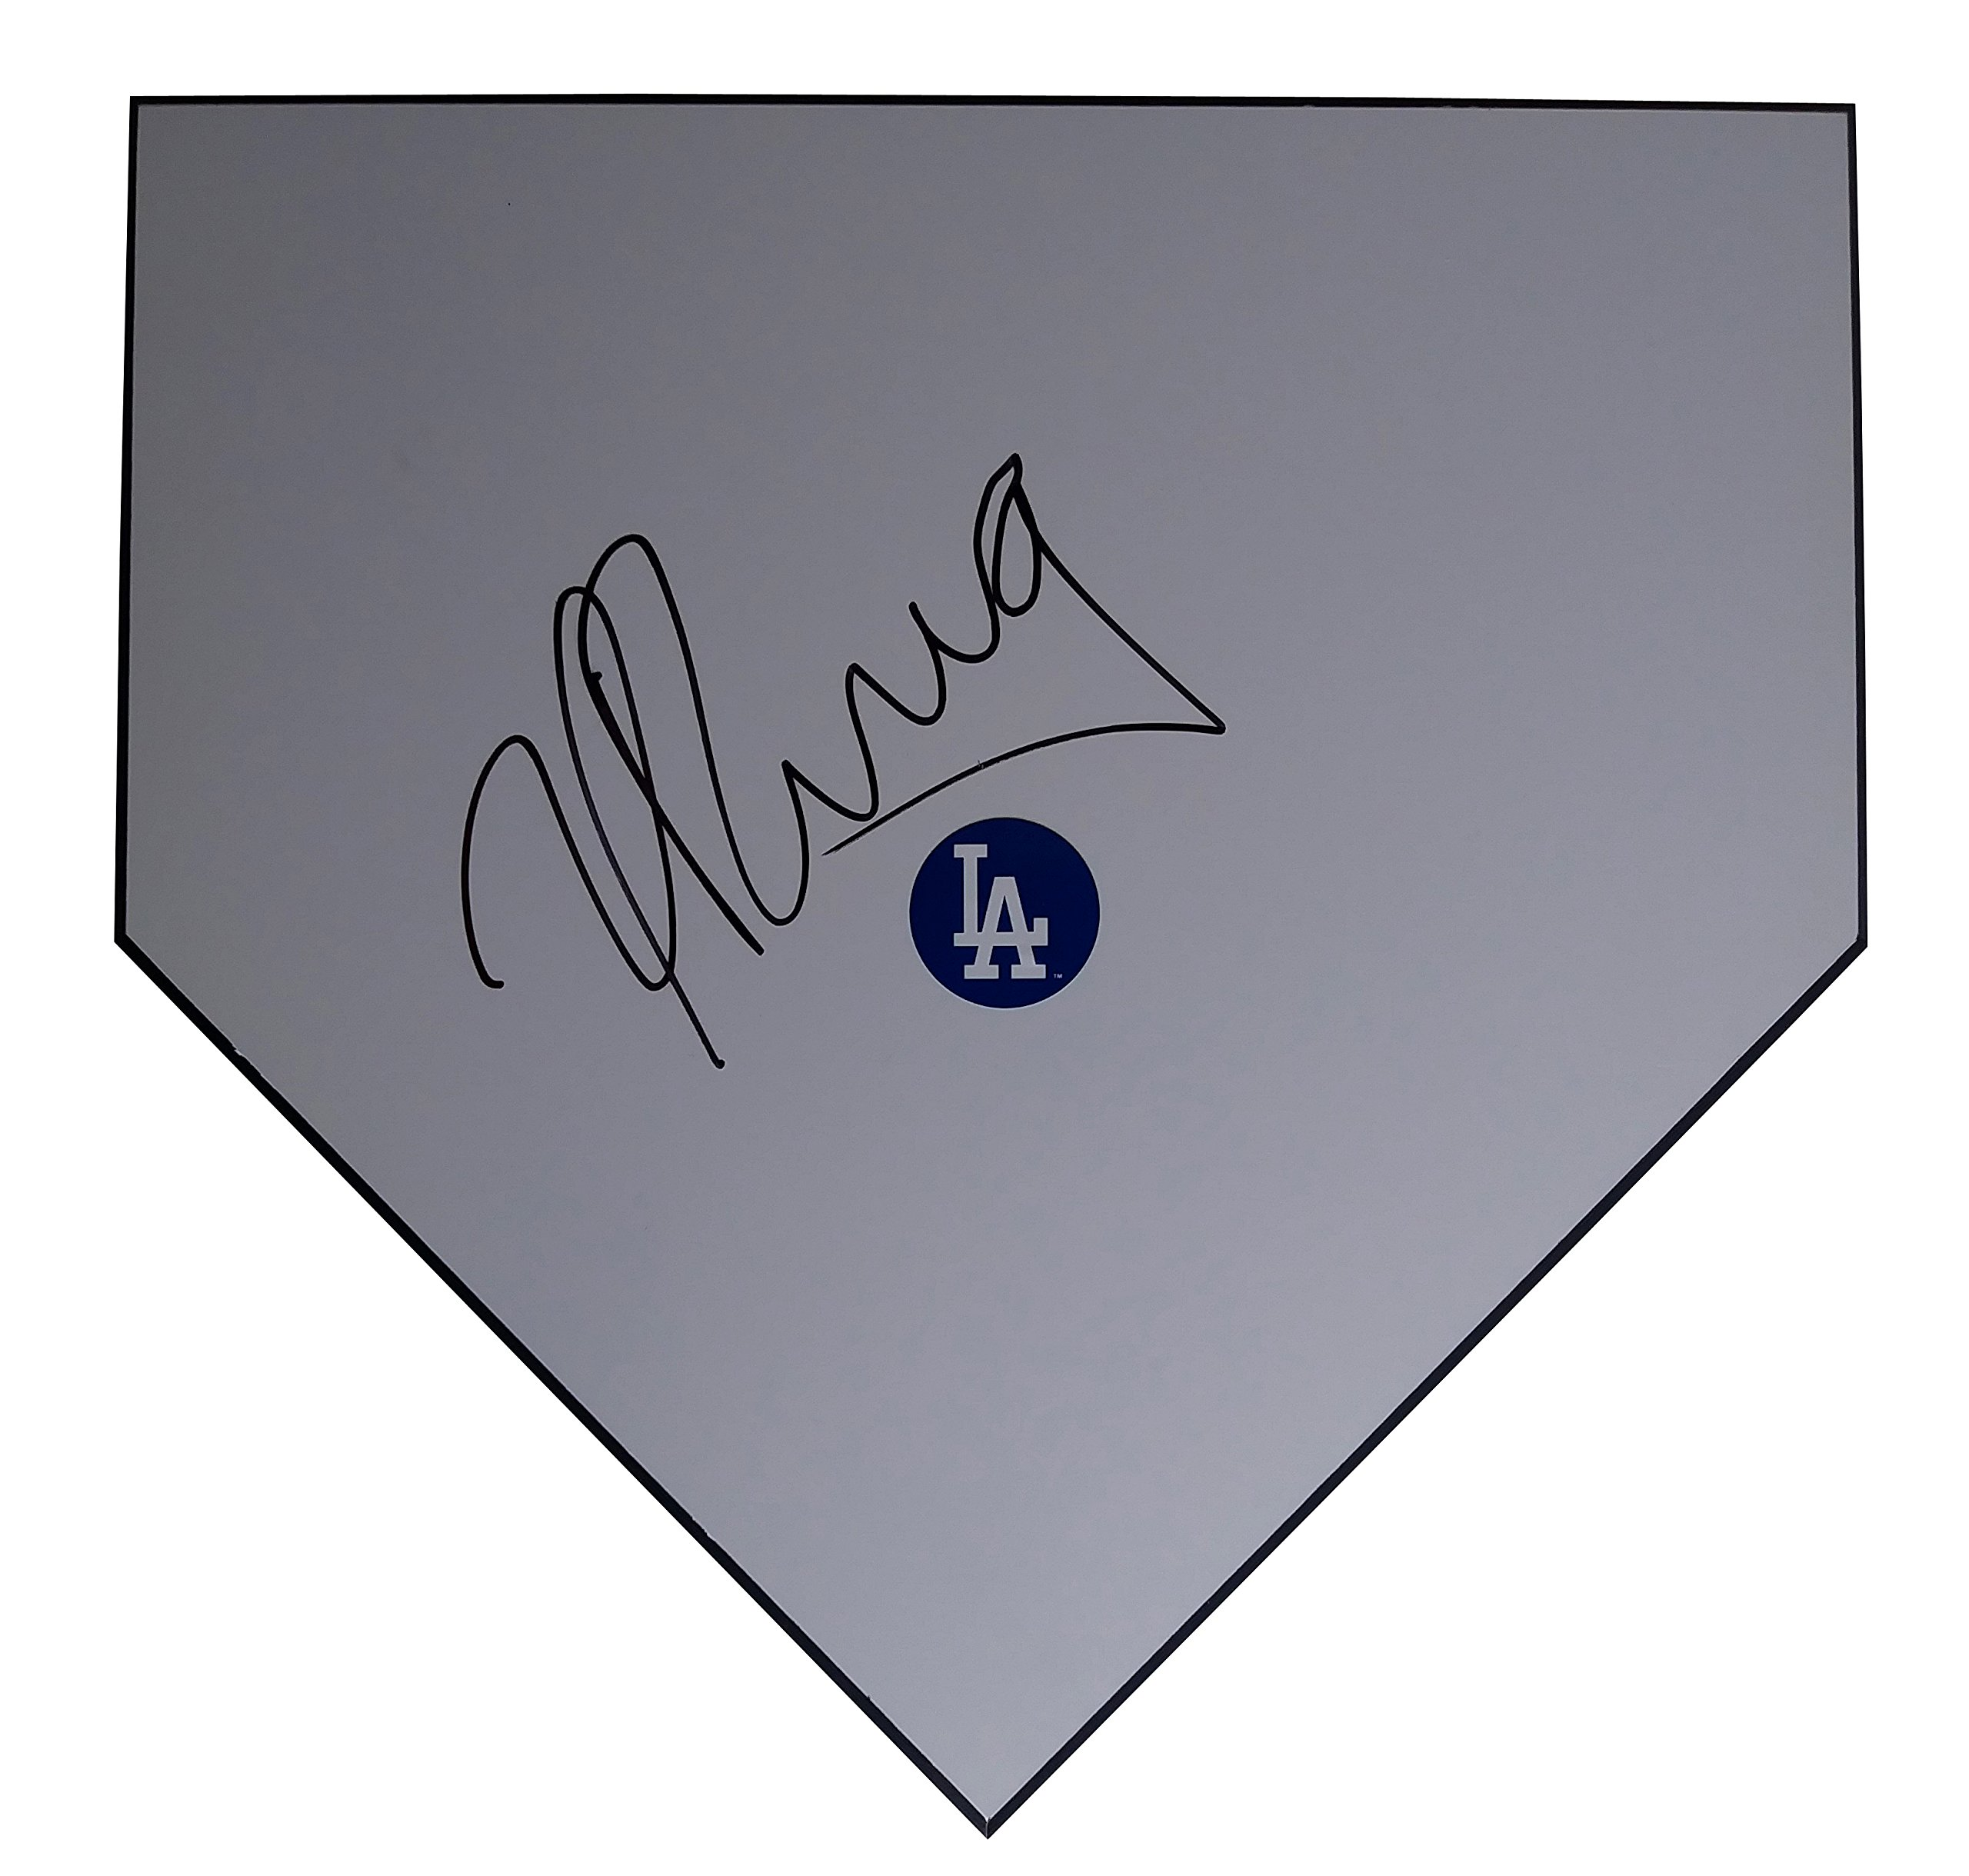 Los Angeles Dodgers Yasiel Puig Autographed Hand Signed LA Dodgers Baseball Home Plate Base with Proof Photo of Signing and COA